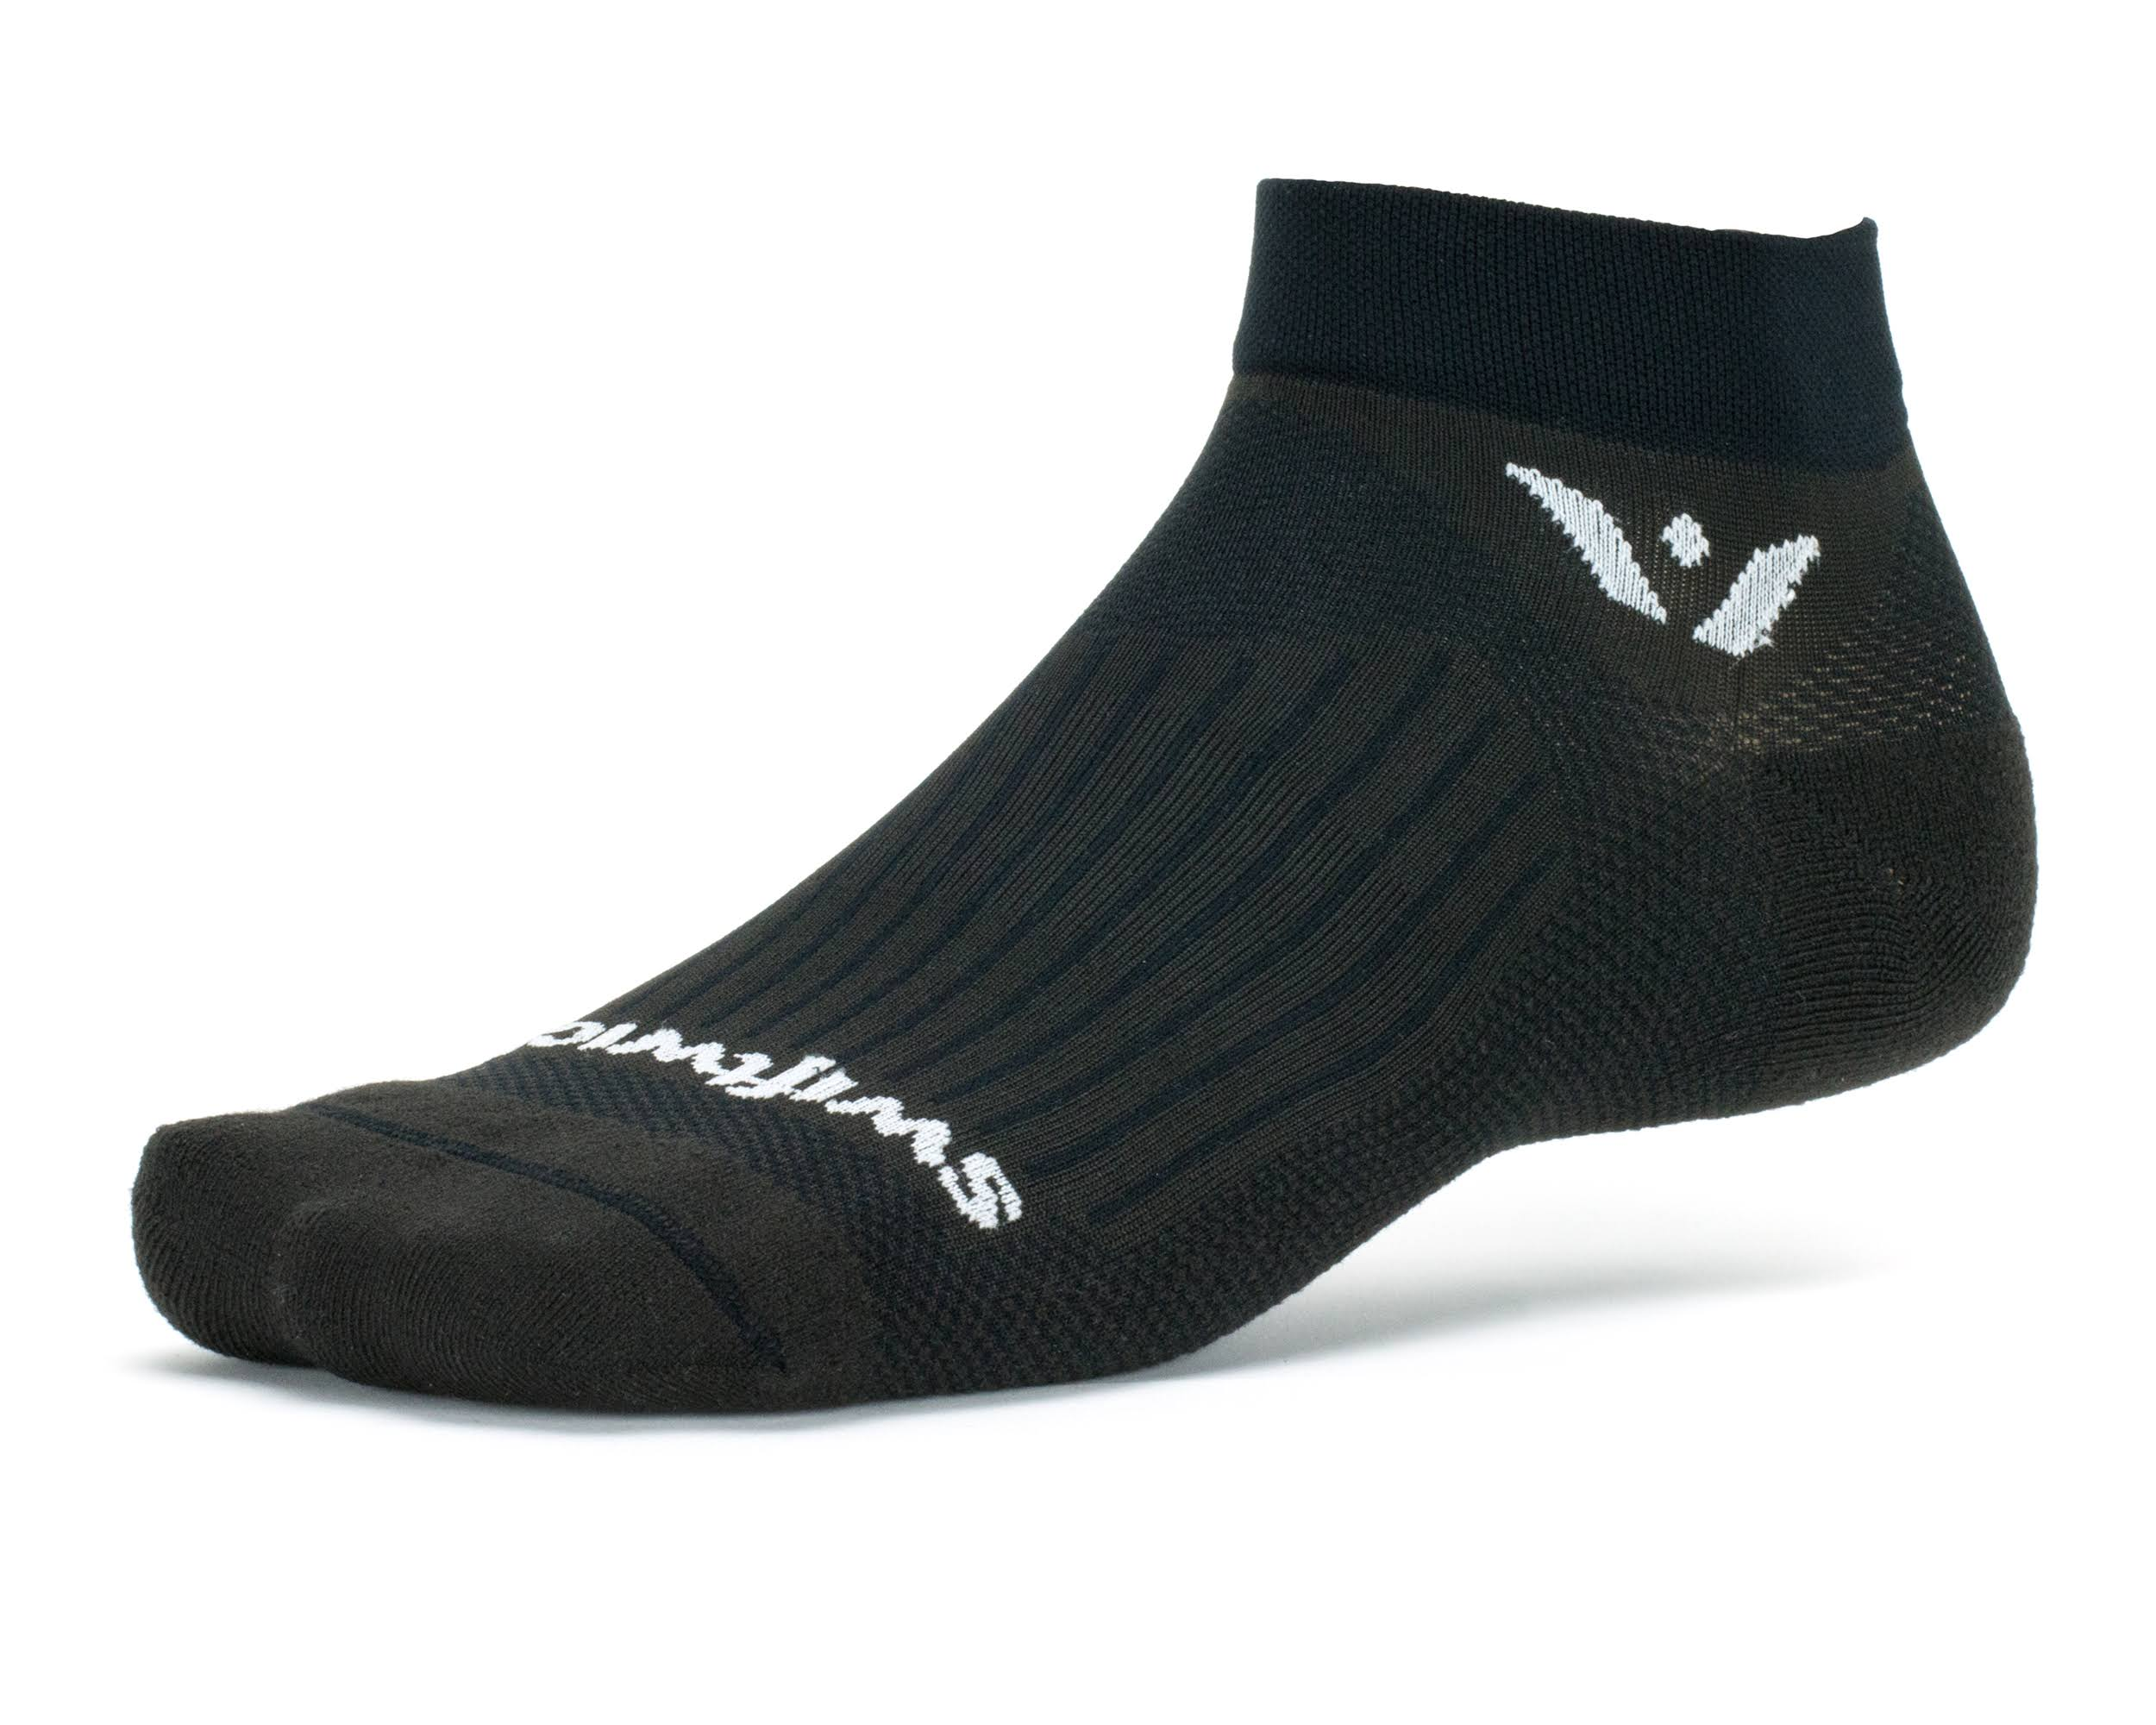 Swiftwick Aspire One Socks - Black, Medium